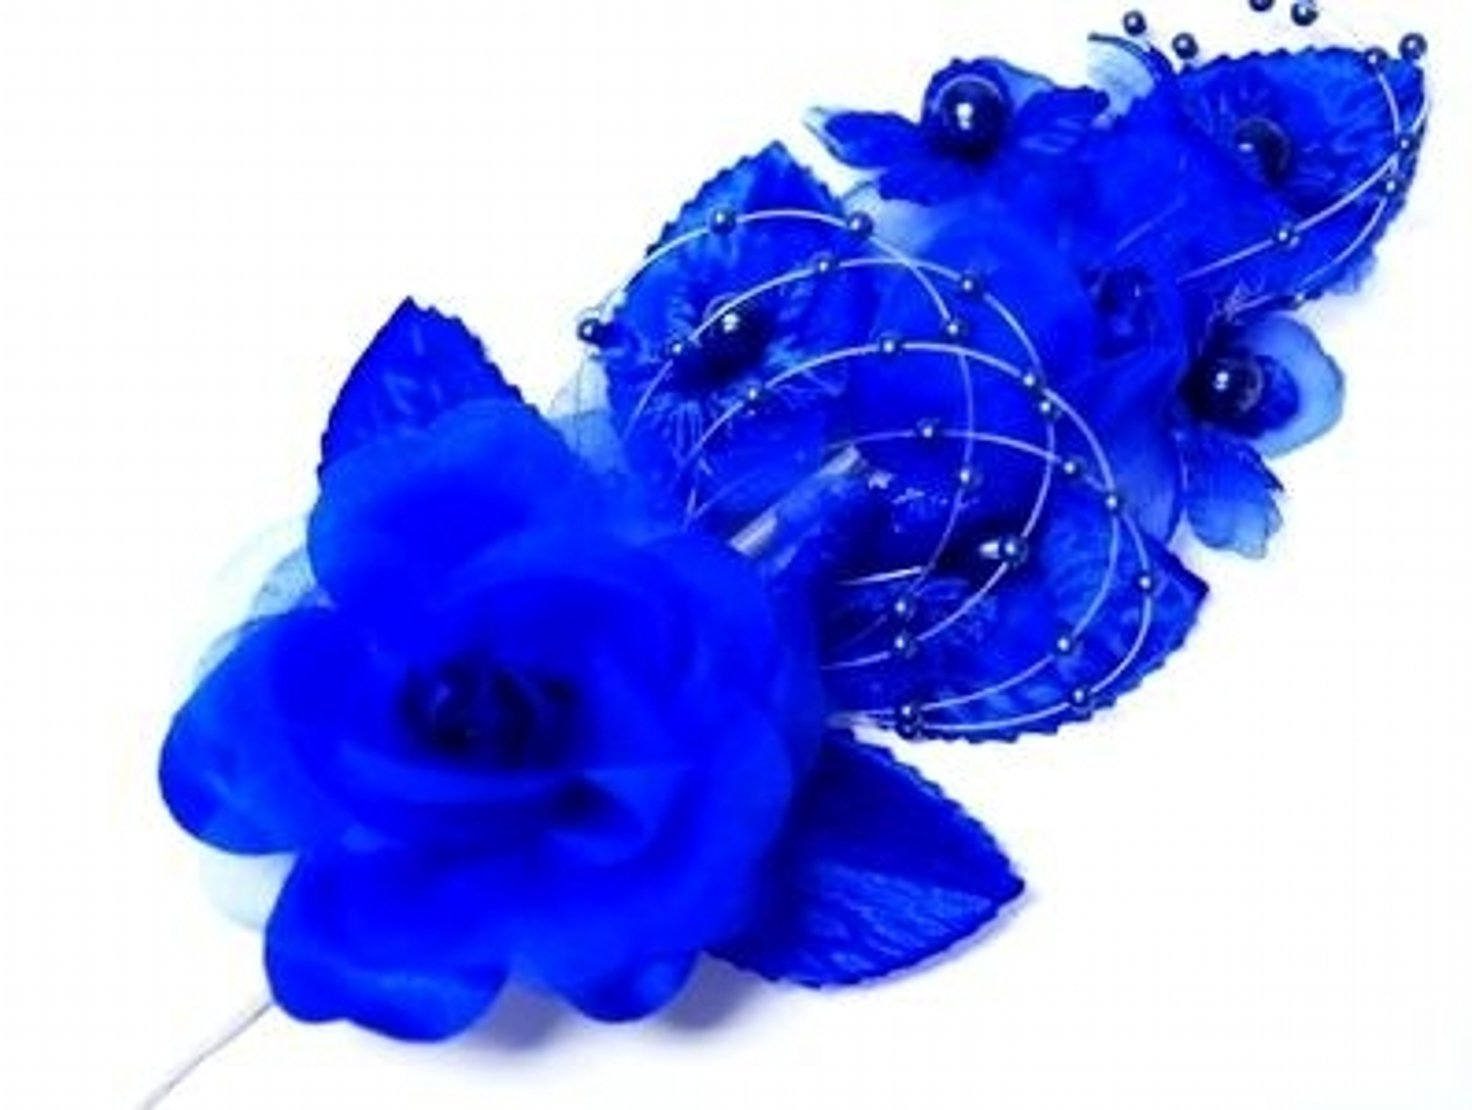 Cheap royal blue silk flowers find royal blue silk flowers deals on 3 royal blue silk flowers pearl organza corsages 5x 25 with a izmirmasajfo Gallery